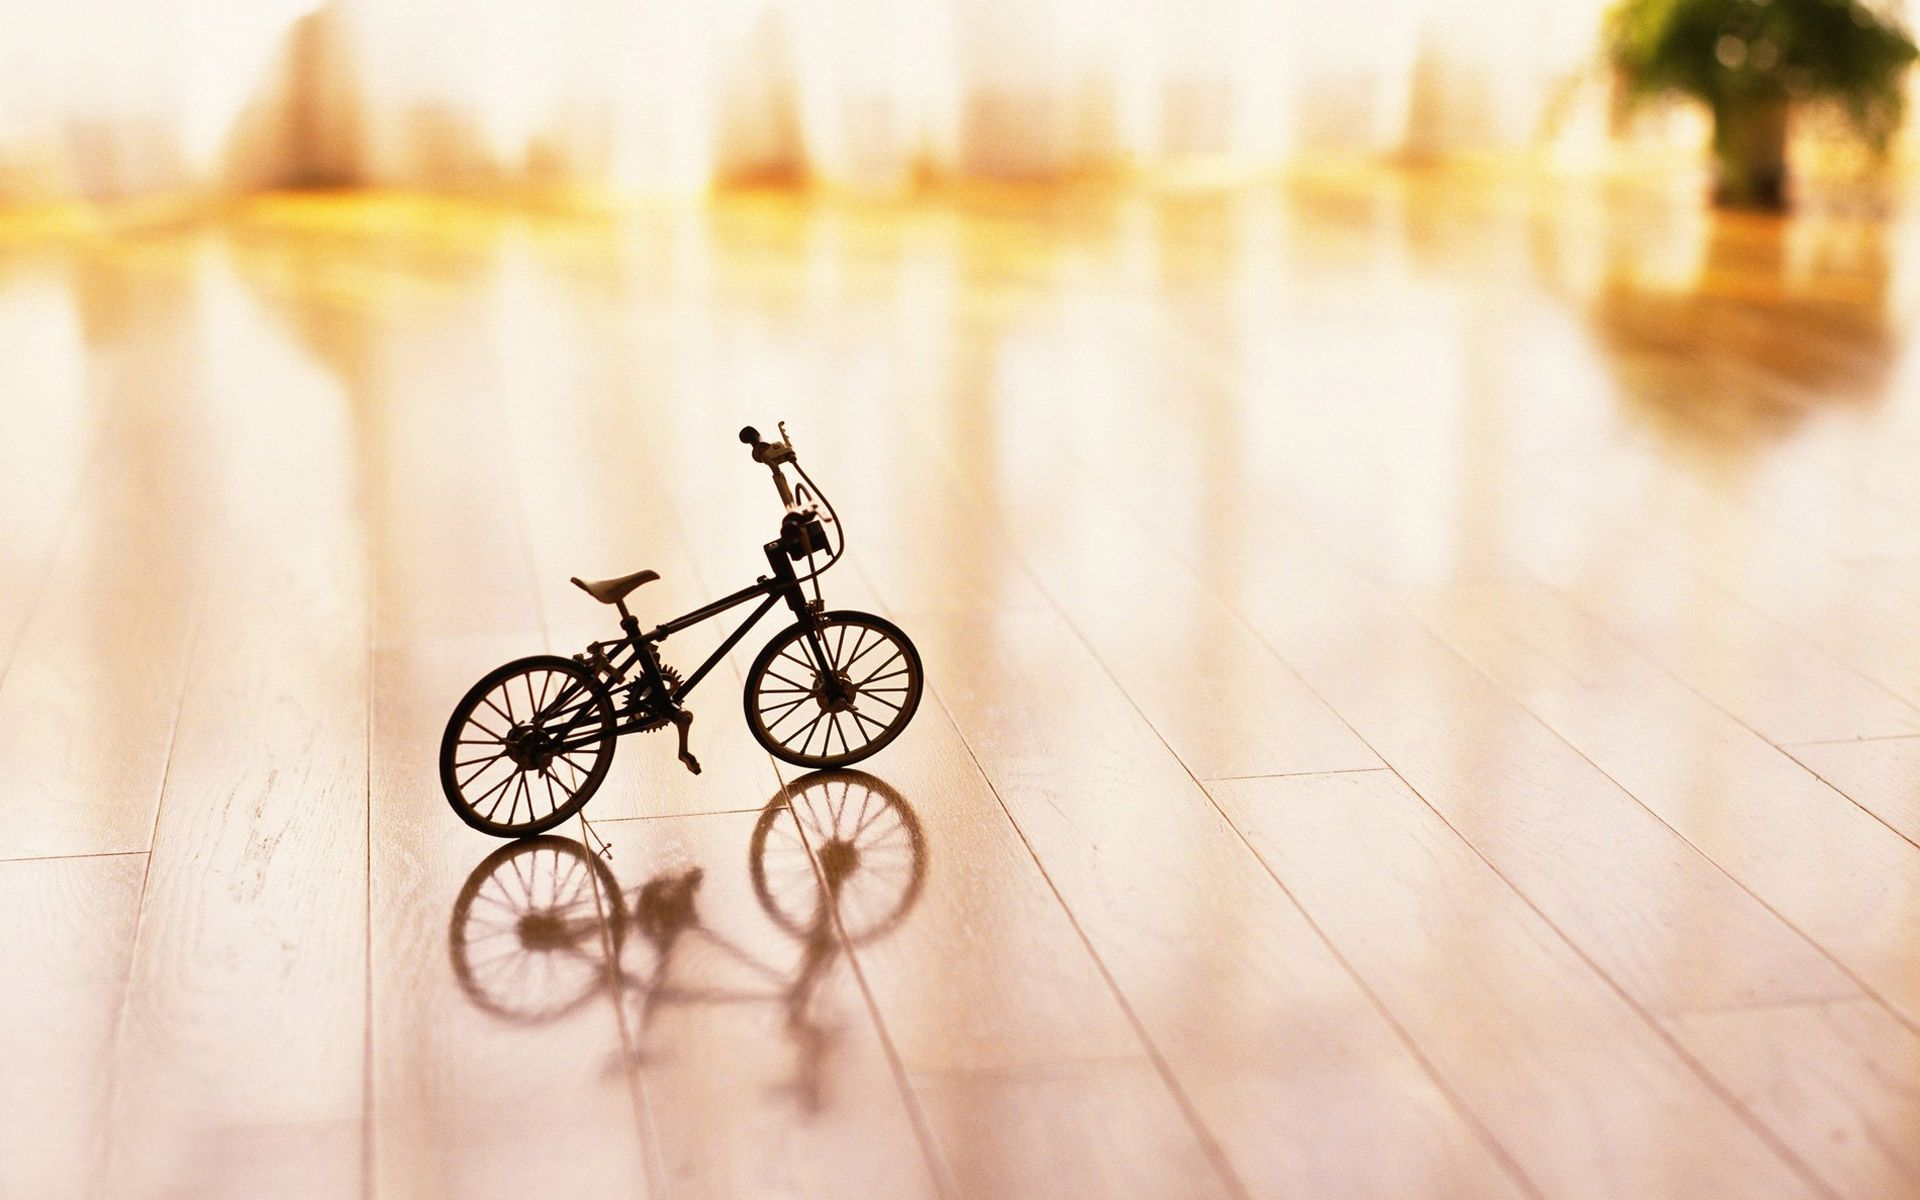 Bicycles Hd Wallpapers Wallpaper Hd Wallpaper Latest Wallpapers